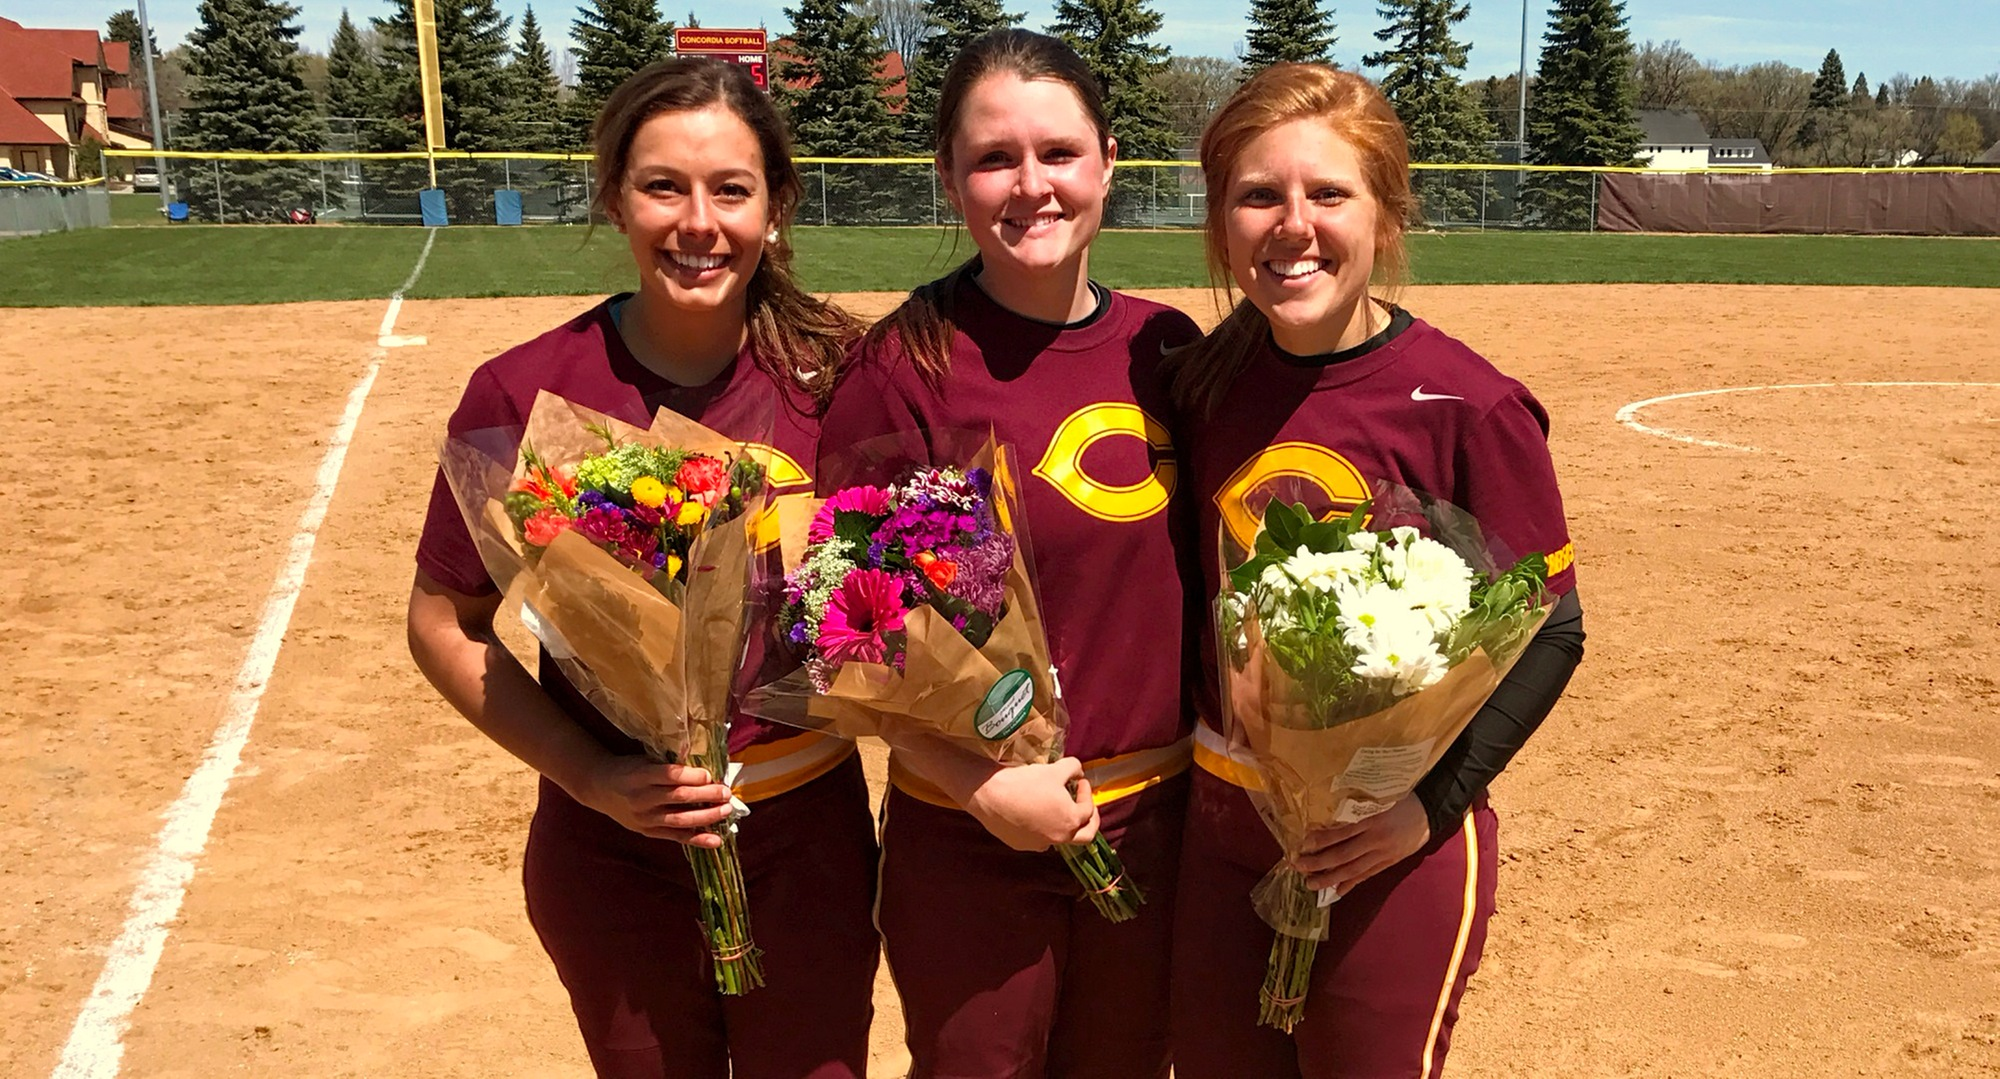 Cobber seniors (L-R) Maddie Little, Gabby Gardner and Taylor Rasmussen combined to go 5-for-10 and drive in three runs in CC's 5-1 win over SMU in Game 1.